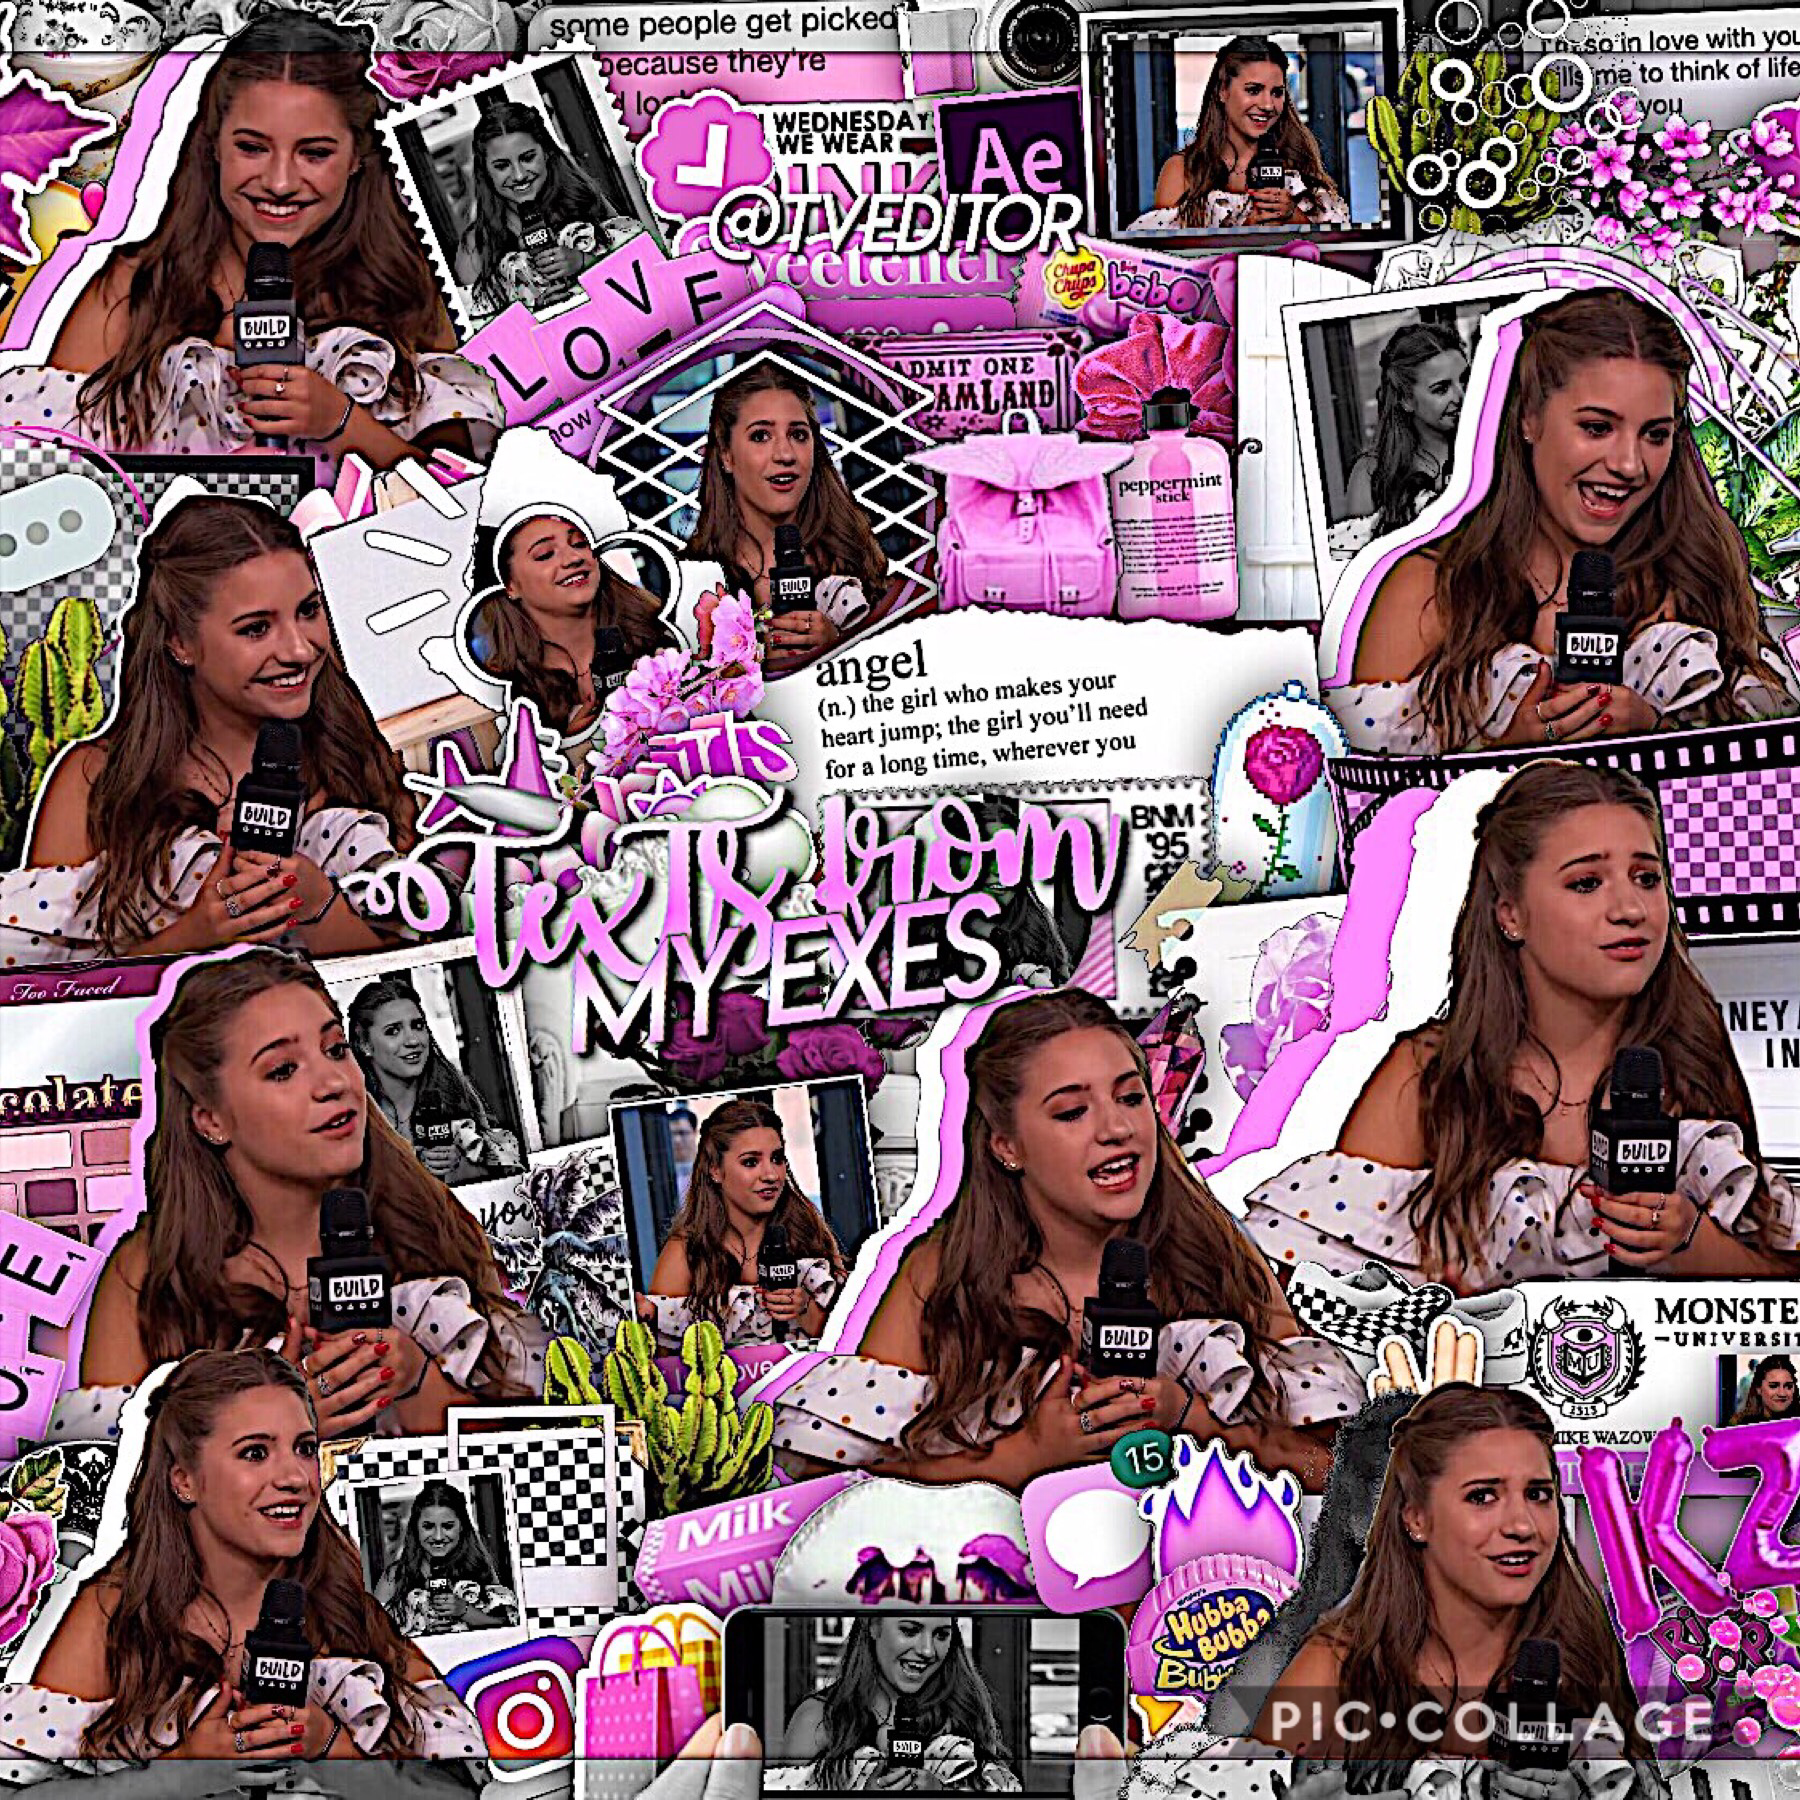 doesn't match my theme and idc 💞💀 don't let this flop 💕💕✨ I love kenz 💗💗 I'm happy I made this in one day (: schools tomorrow and I'm still up great 👍 but enjoy this !¡